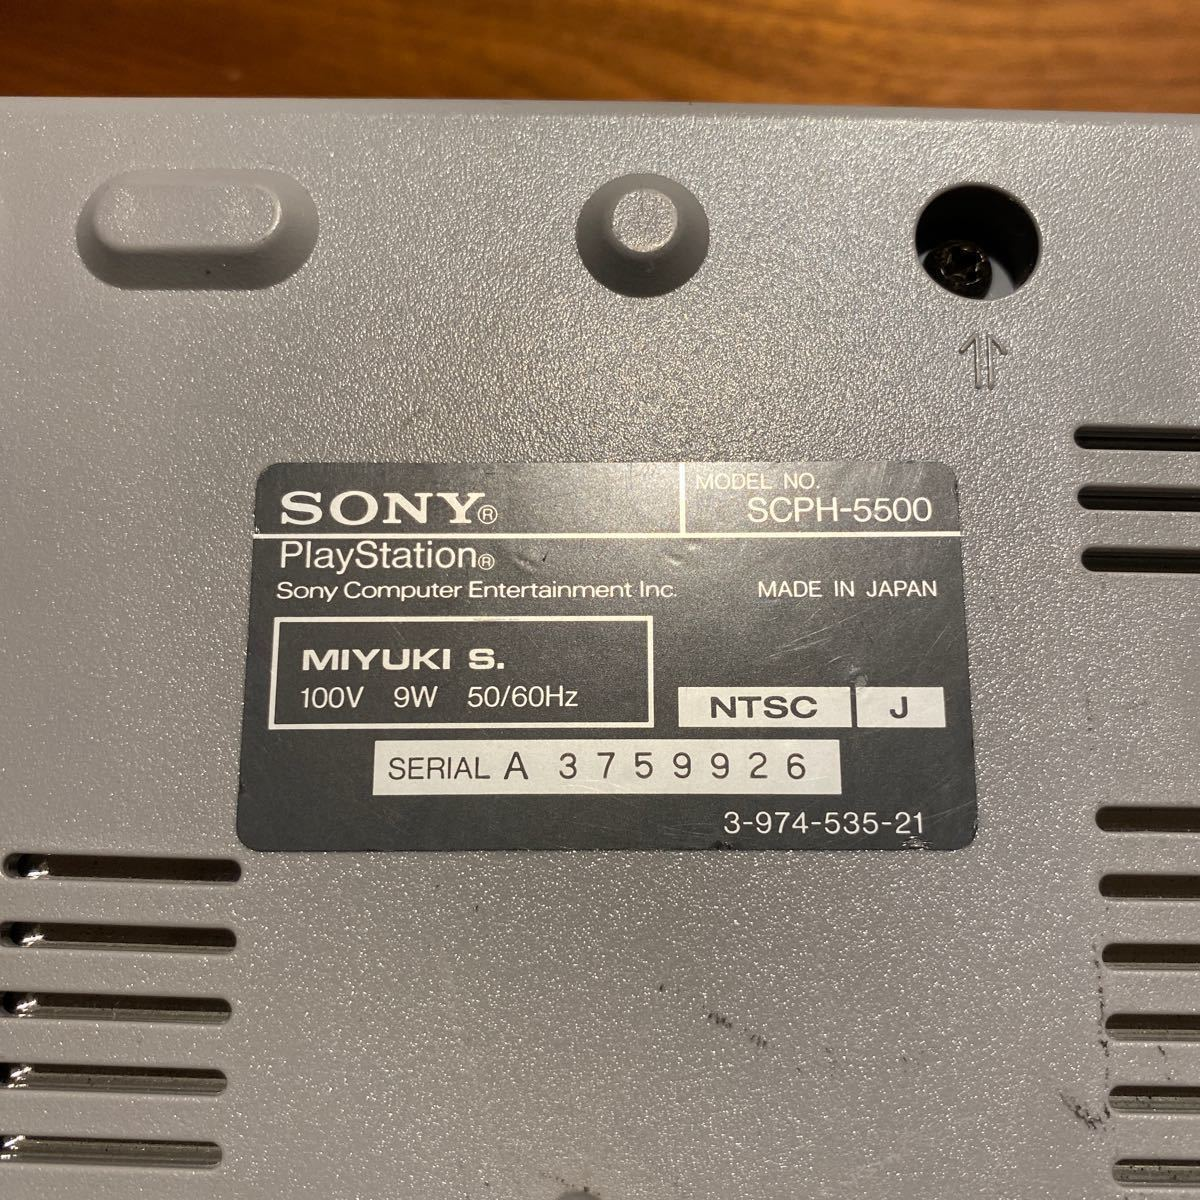 PlayStation SONY SCPH-5500